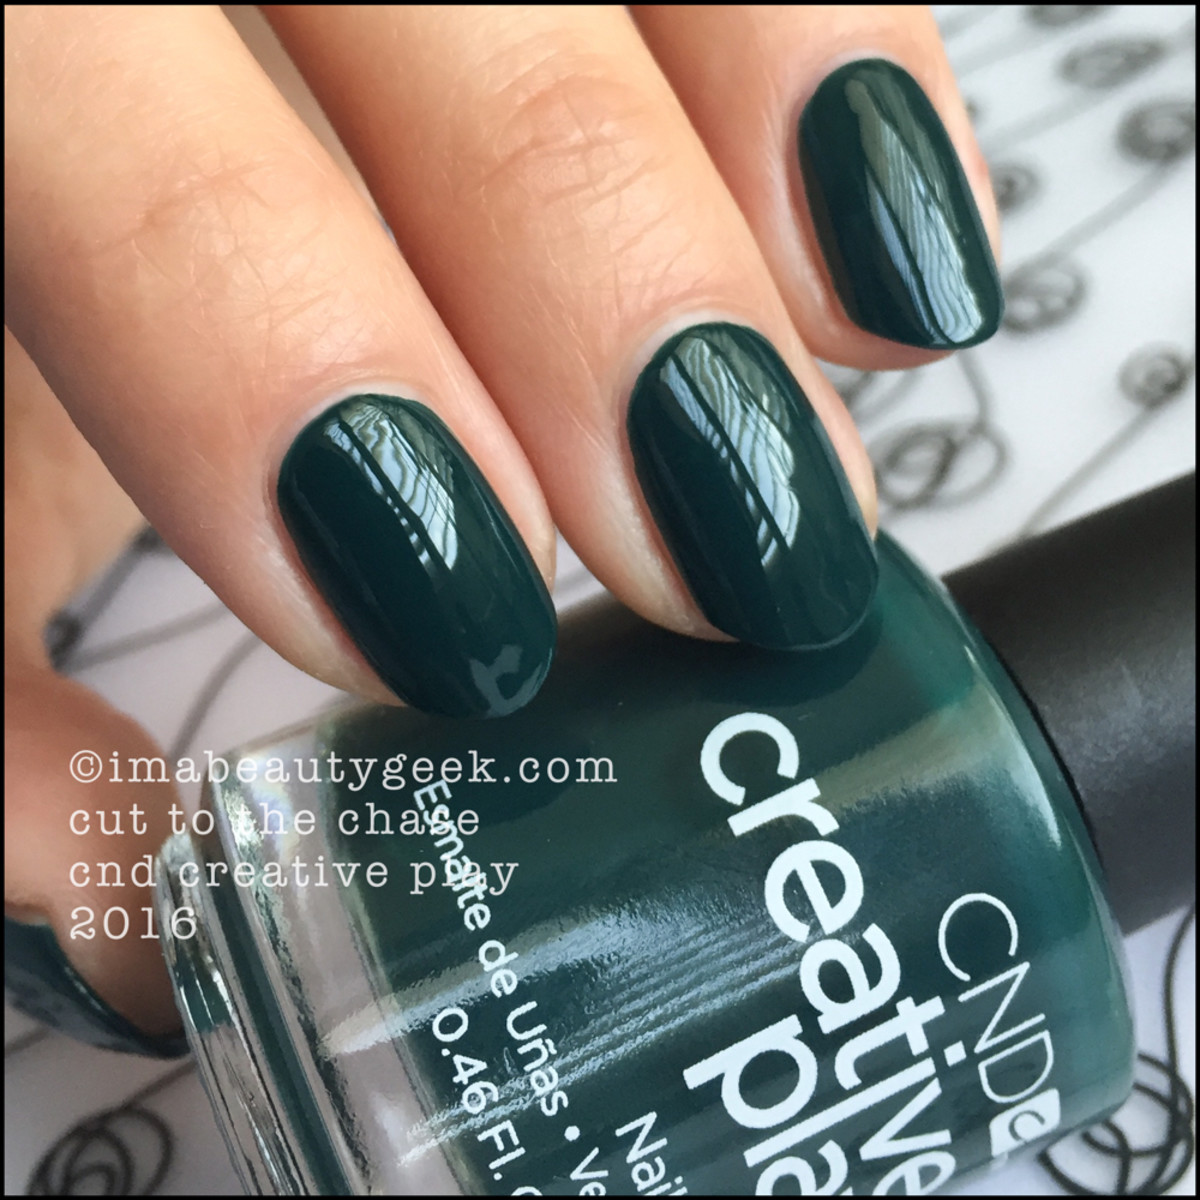 CND Creative Play Cut to the Chase_CND Creative Play Nail Polish Swatches